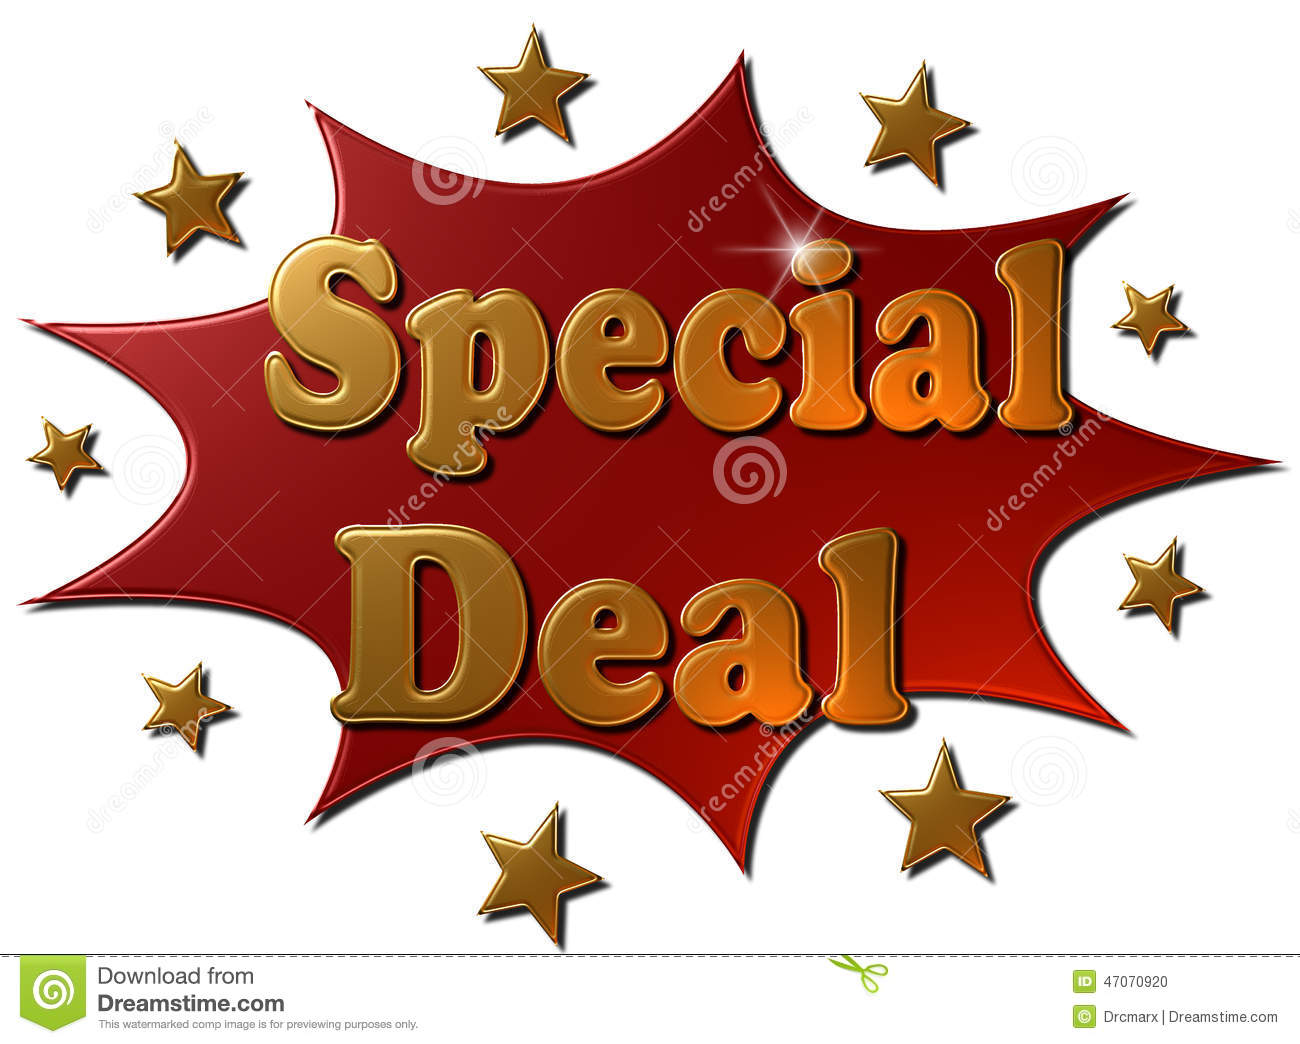 Latest PLR Deals - and a FREE Special Deal Graphic for You ...